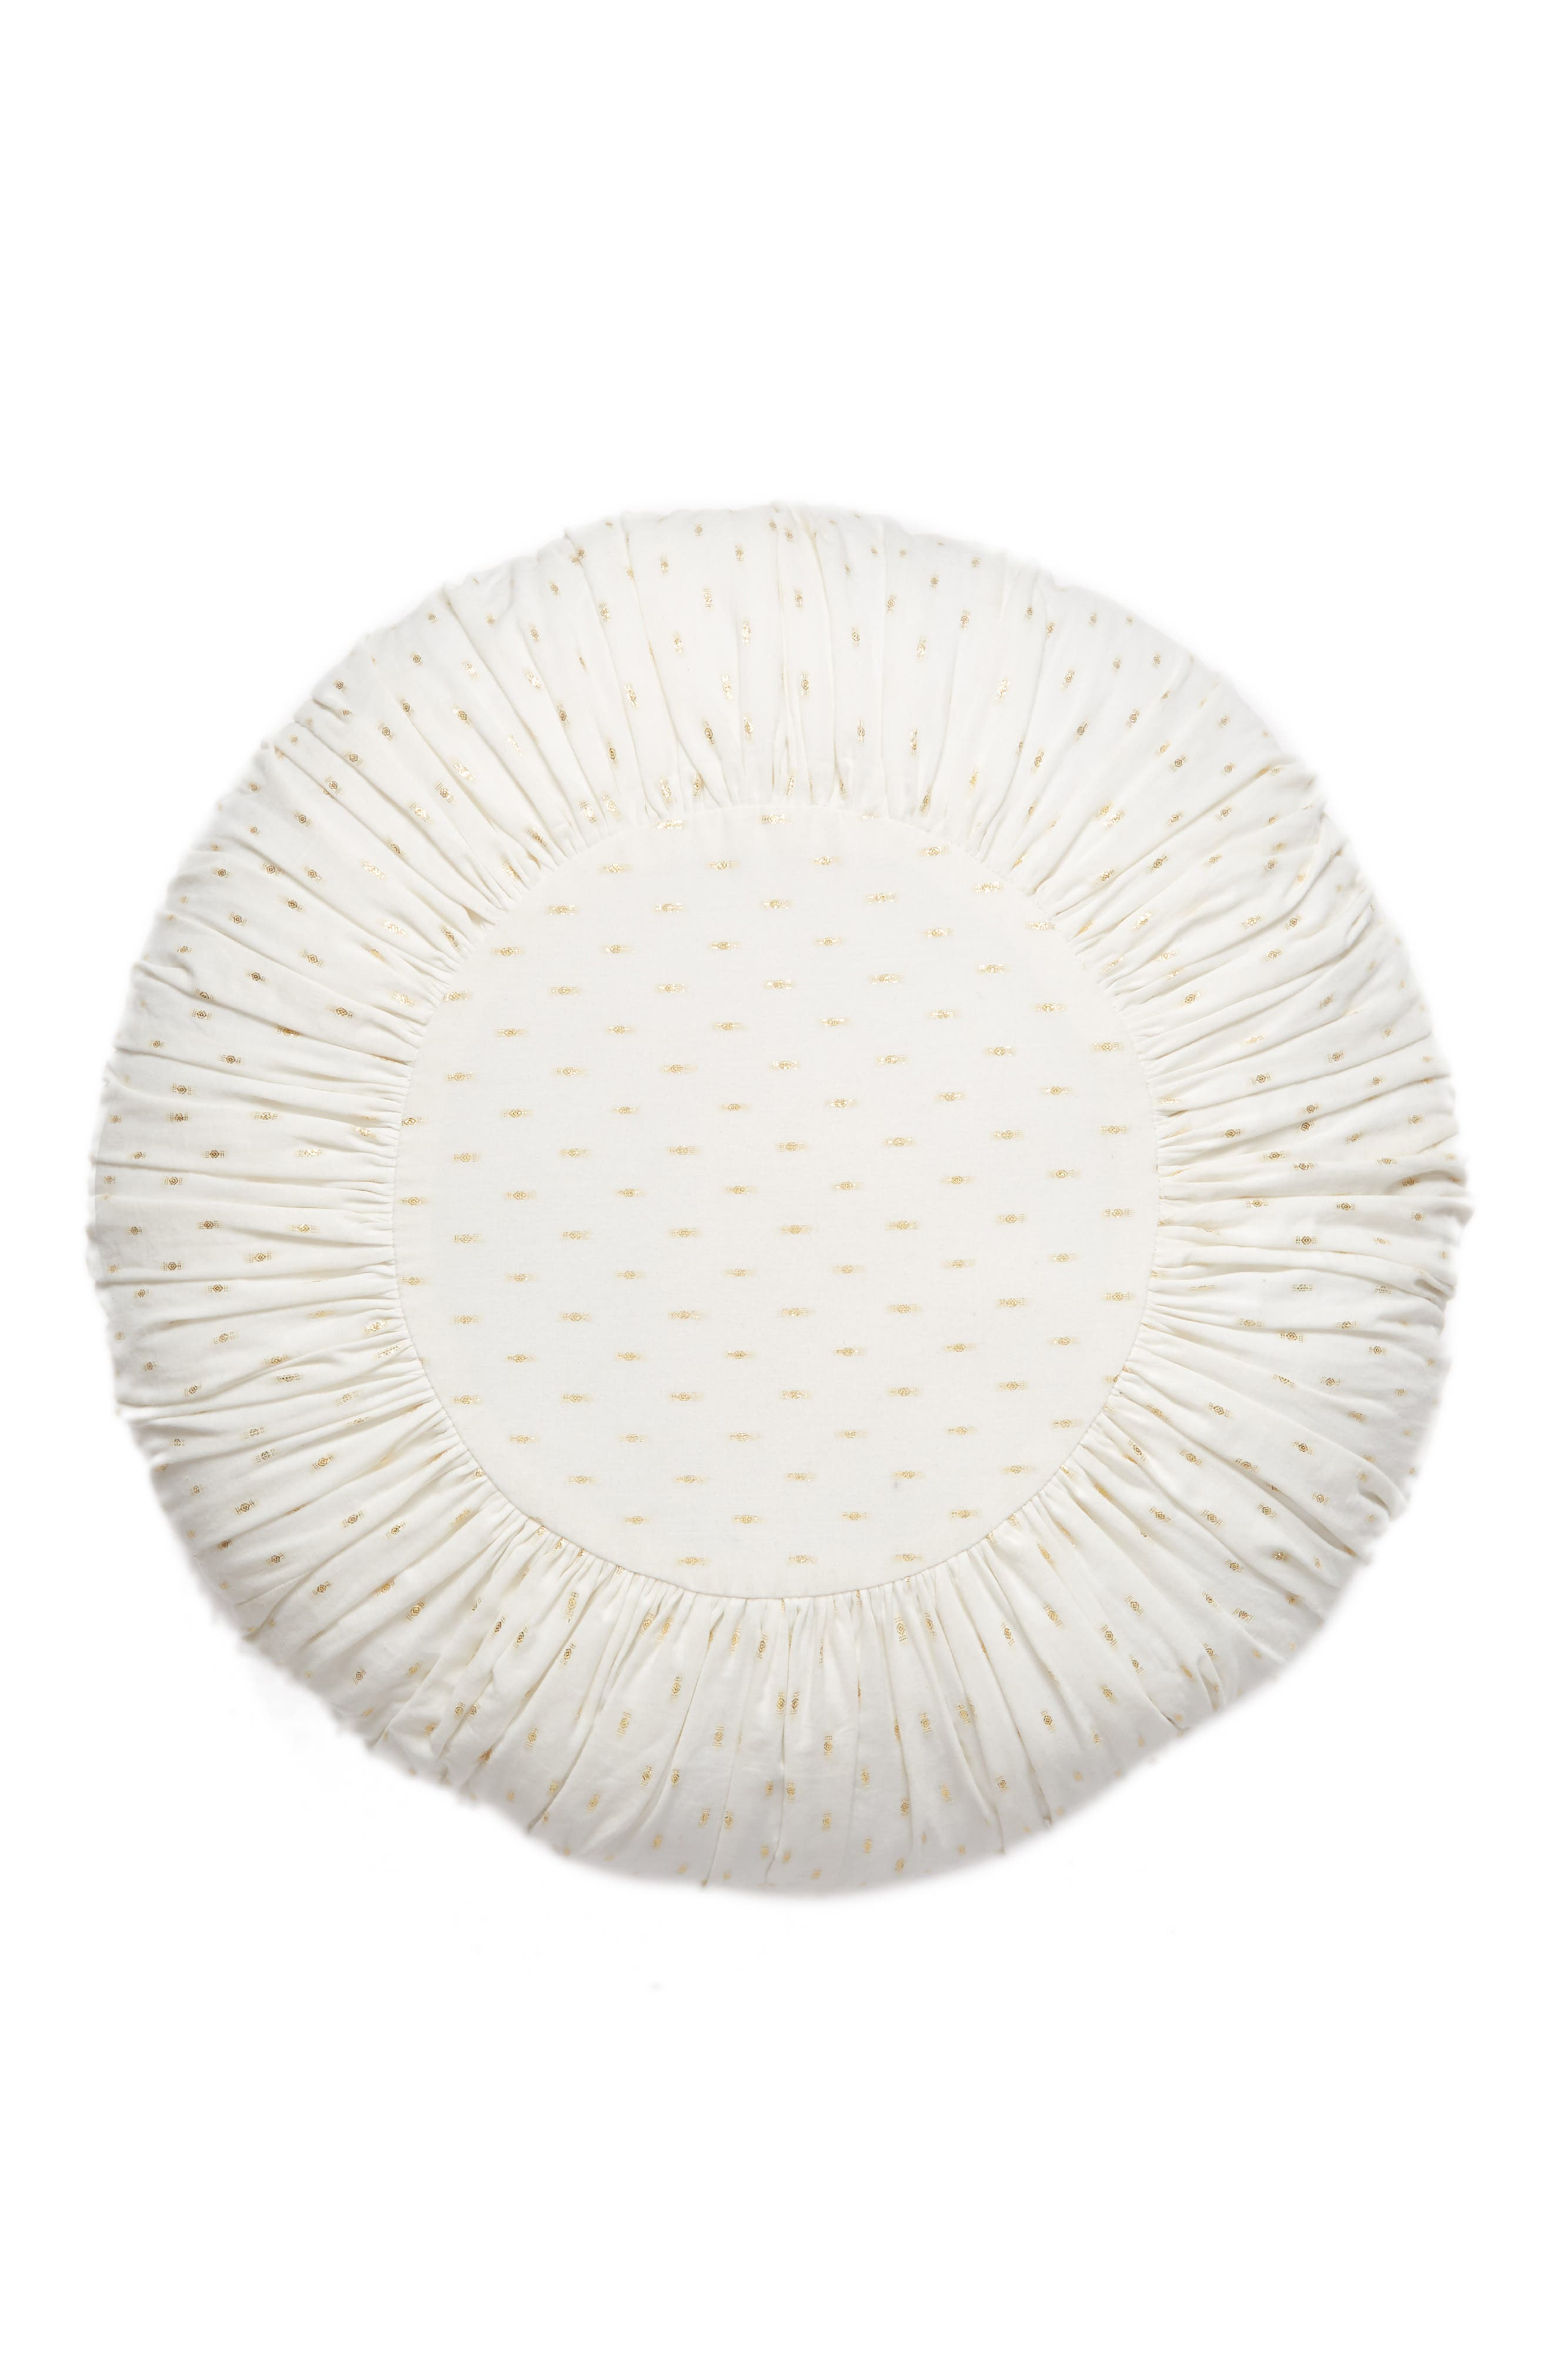 Palace Accent Pillow,                         Main,                         color, Ivory